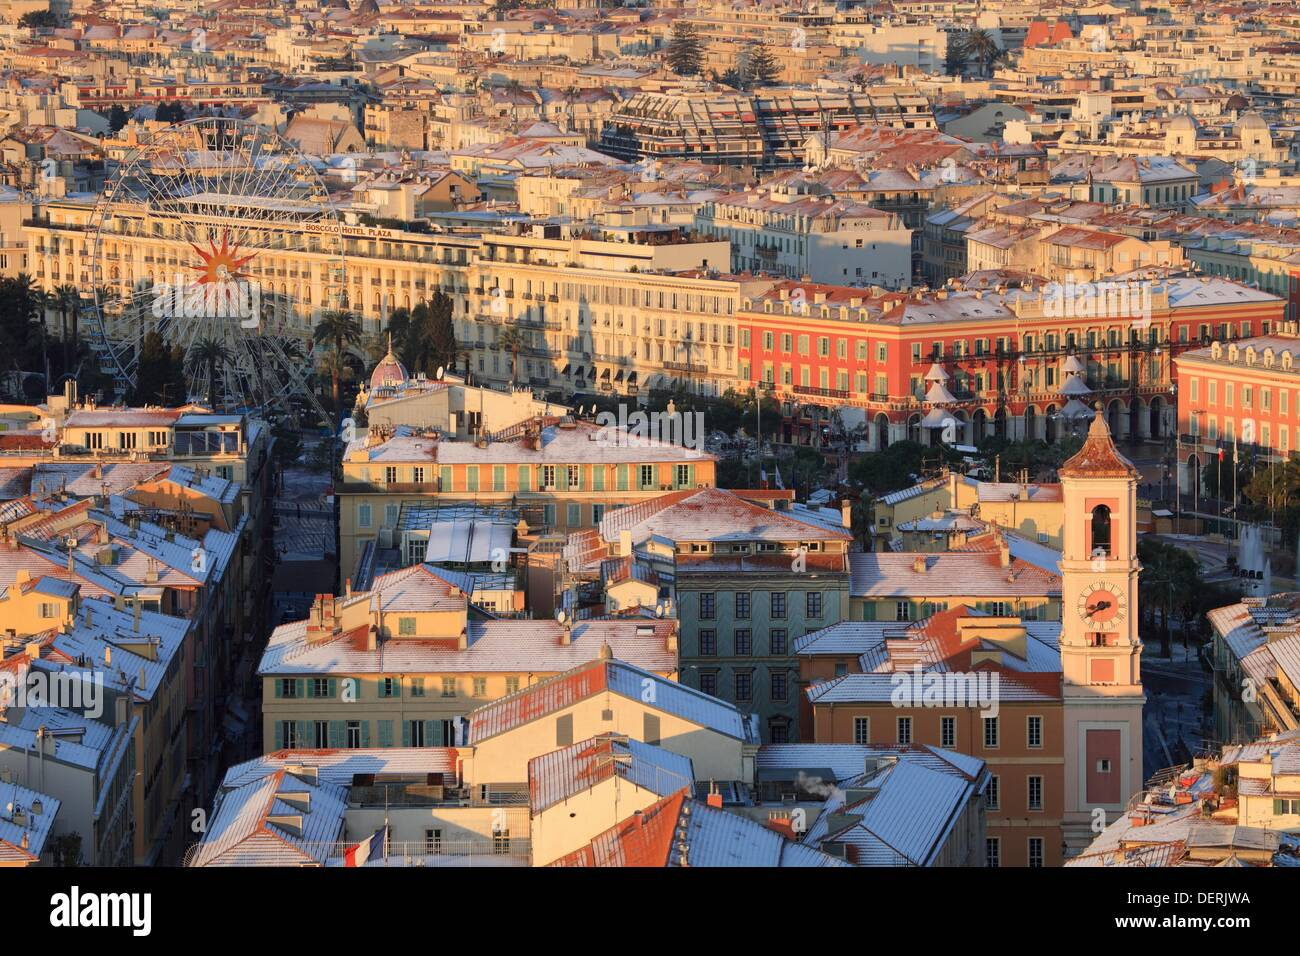 Top view above the snowed roof in winter time in Nice Alpes-Maritimes 06 cote d´azur PACA France Europe - Stock Image